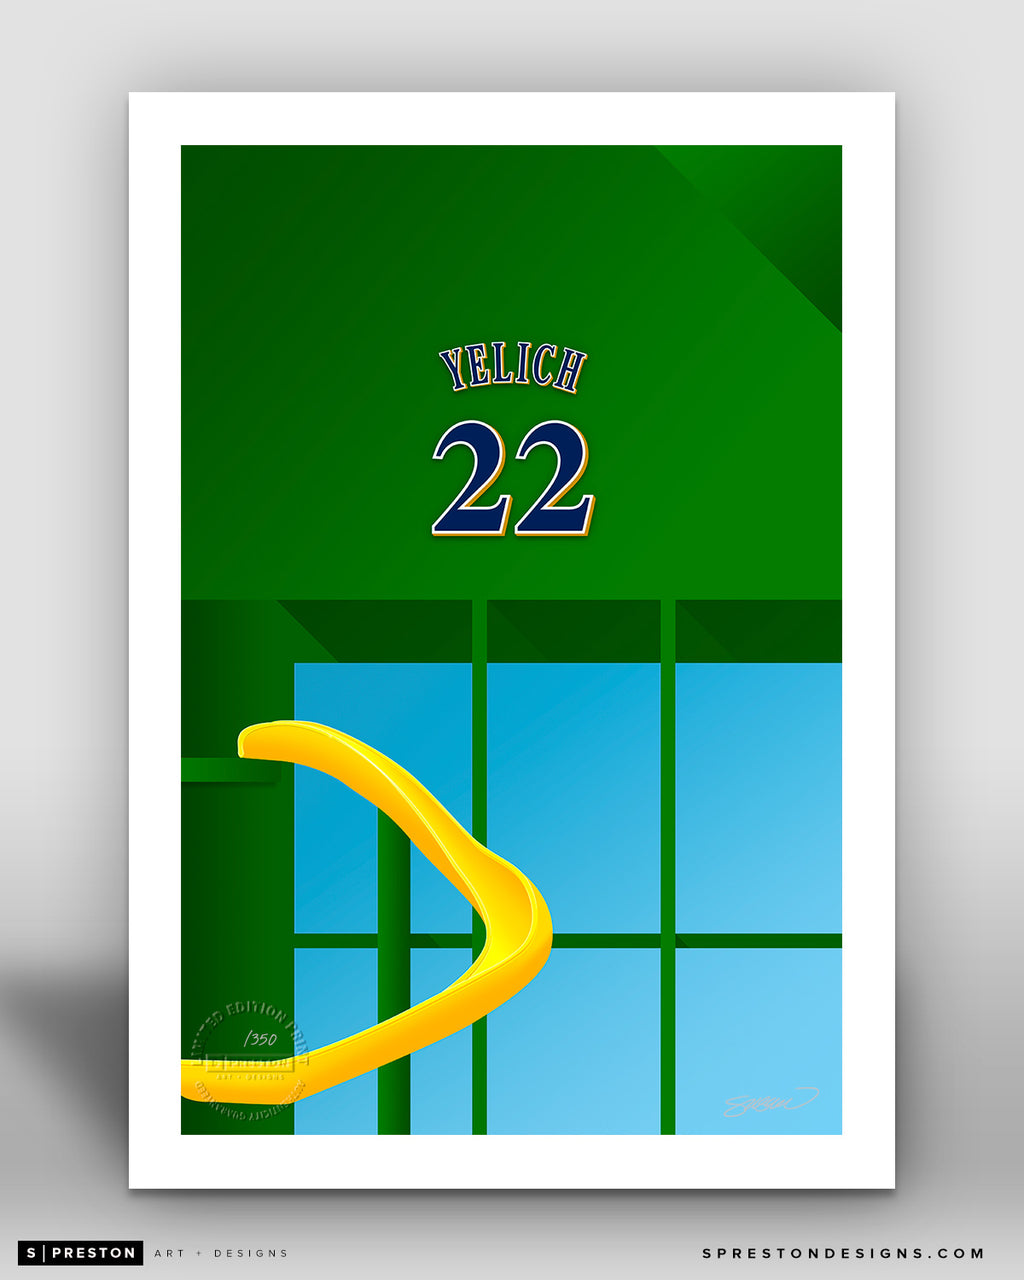 Minimalist American Family Field - Player Series - Christian Yelich - Milwaukee Brewers - S. Preston